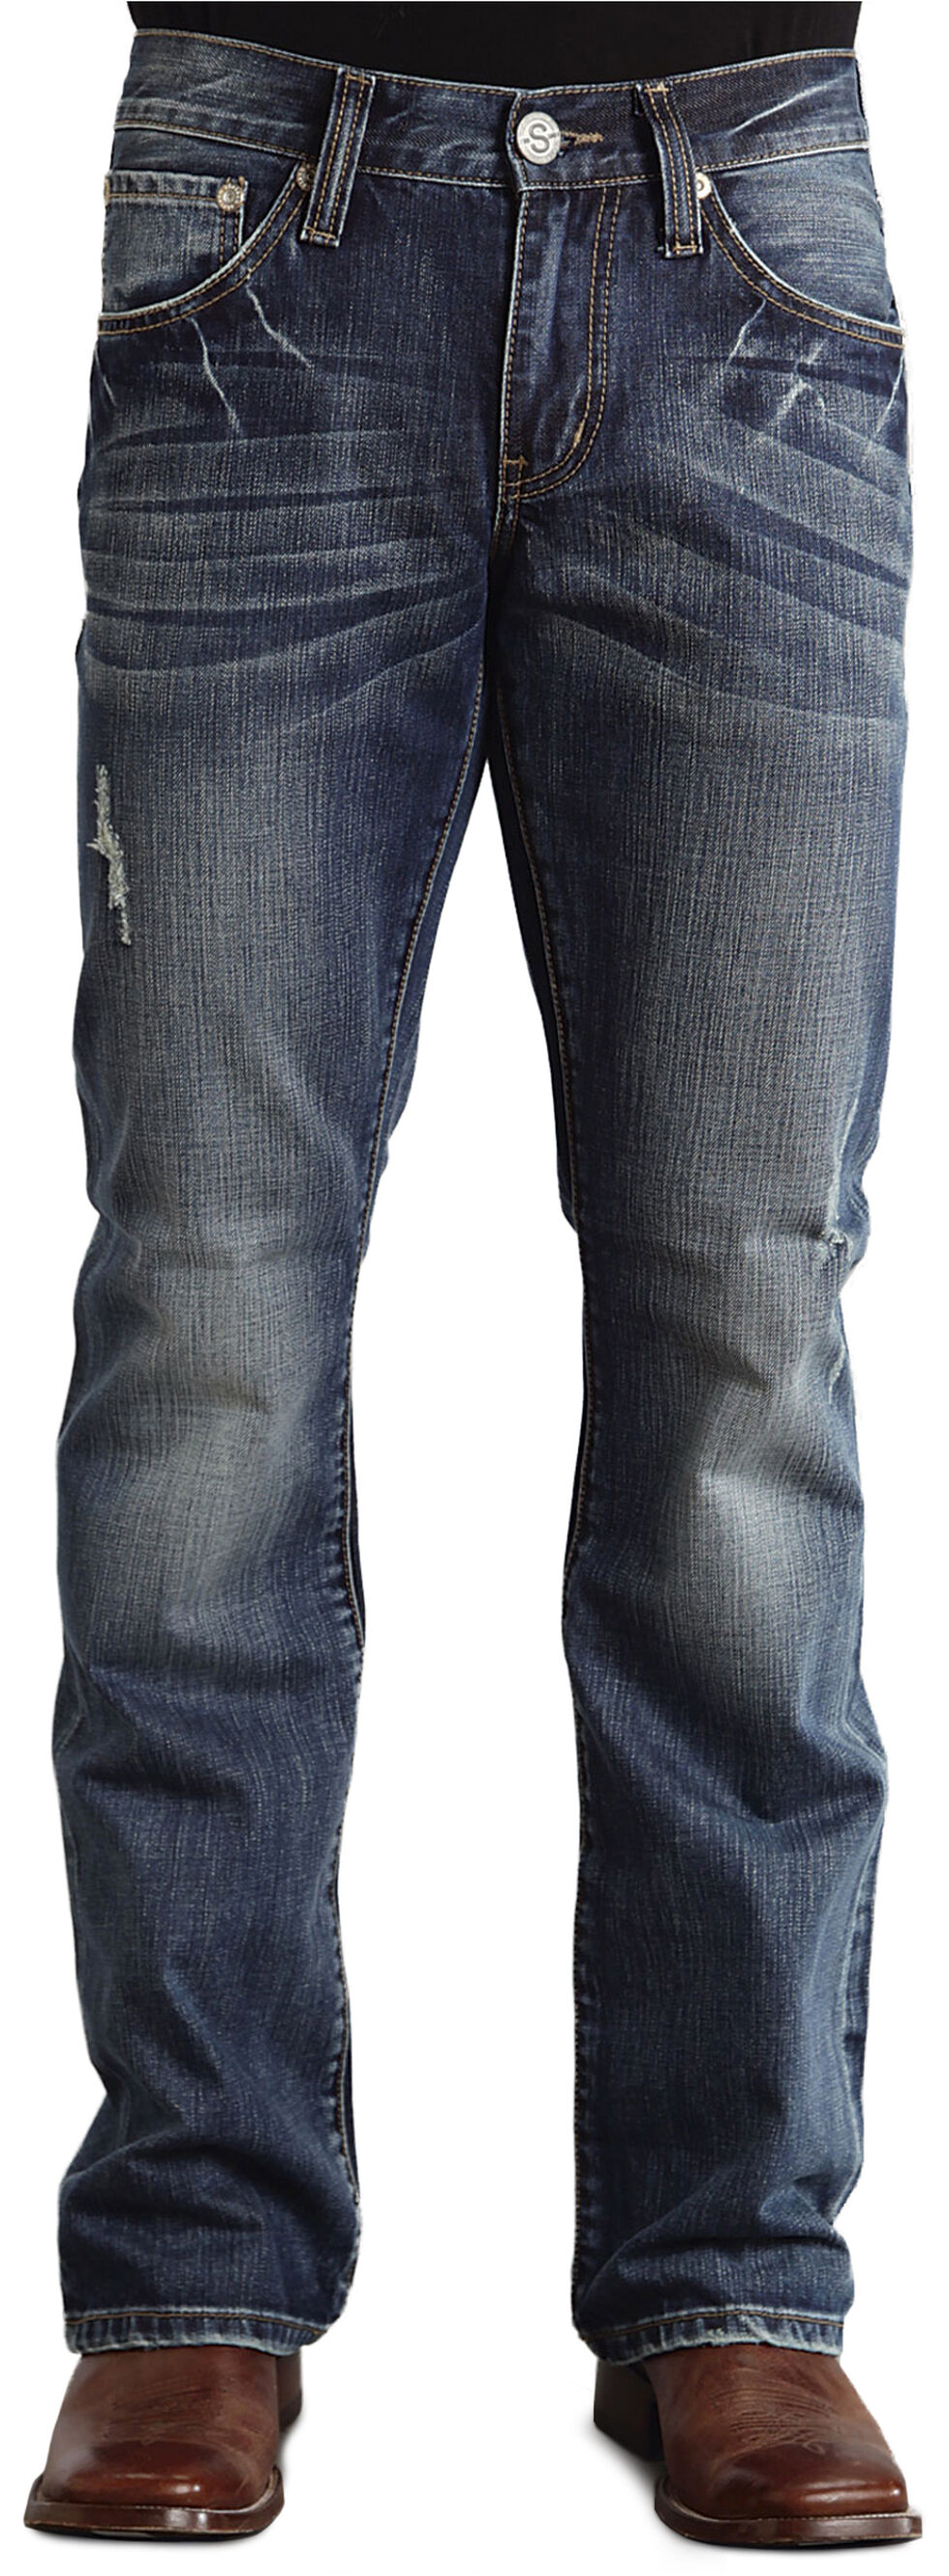 """Stetson Rock Fit Embossed """"X"""" Stitched Jeans, Dark Stone, hi-res"""